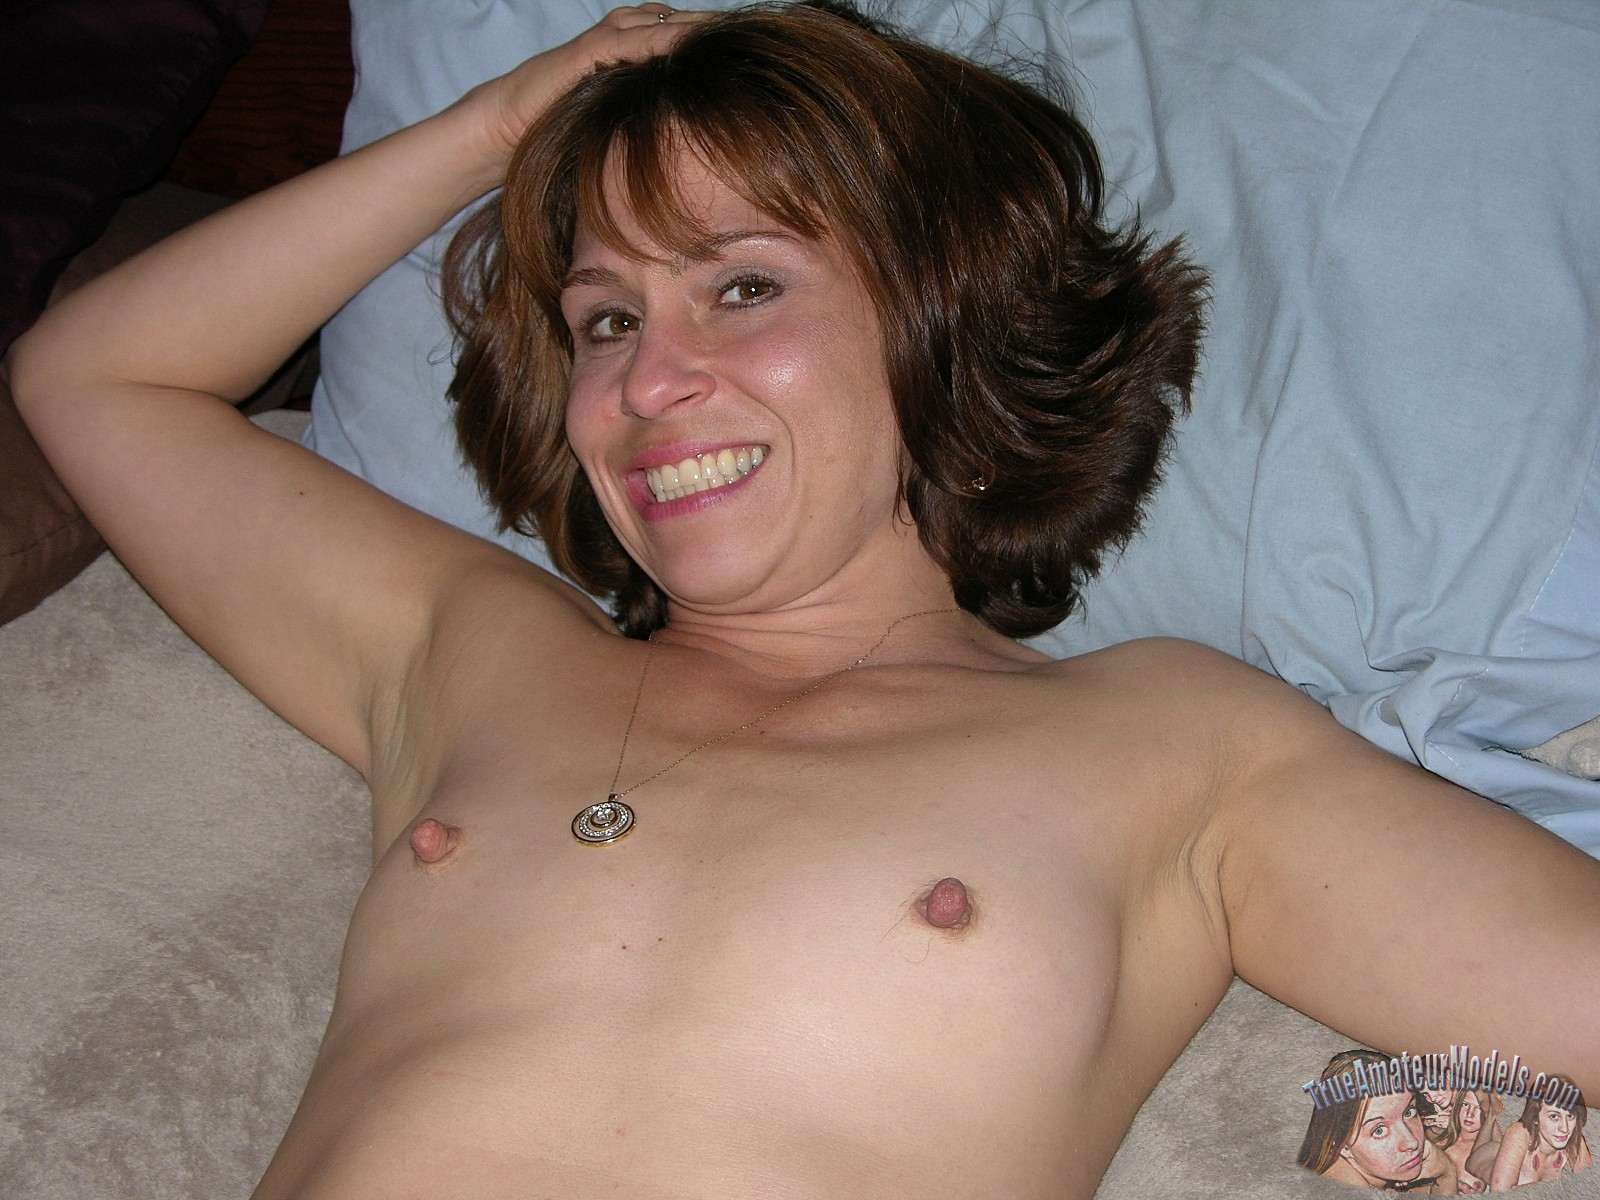 suggest you come cumming on her tits was and with me